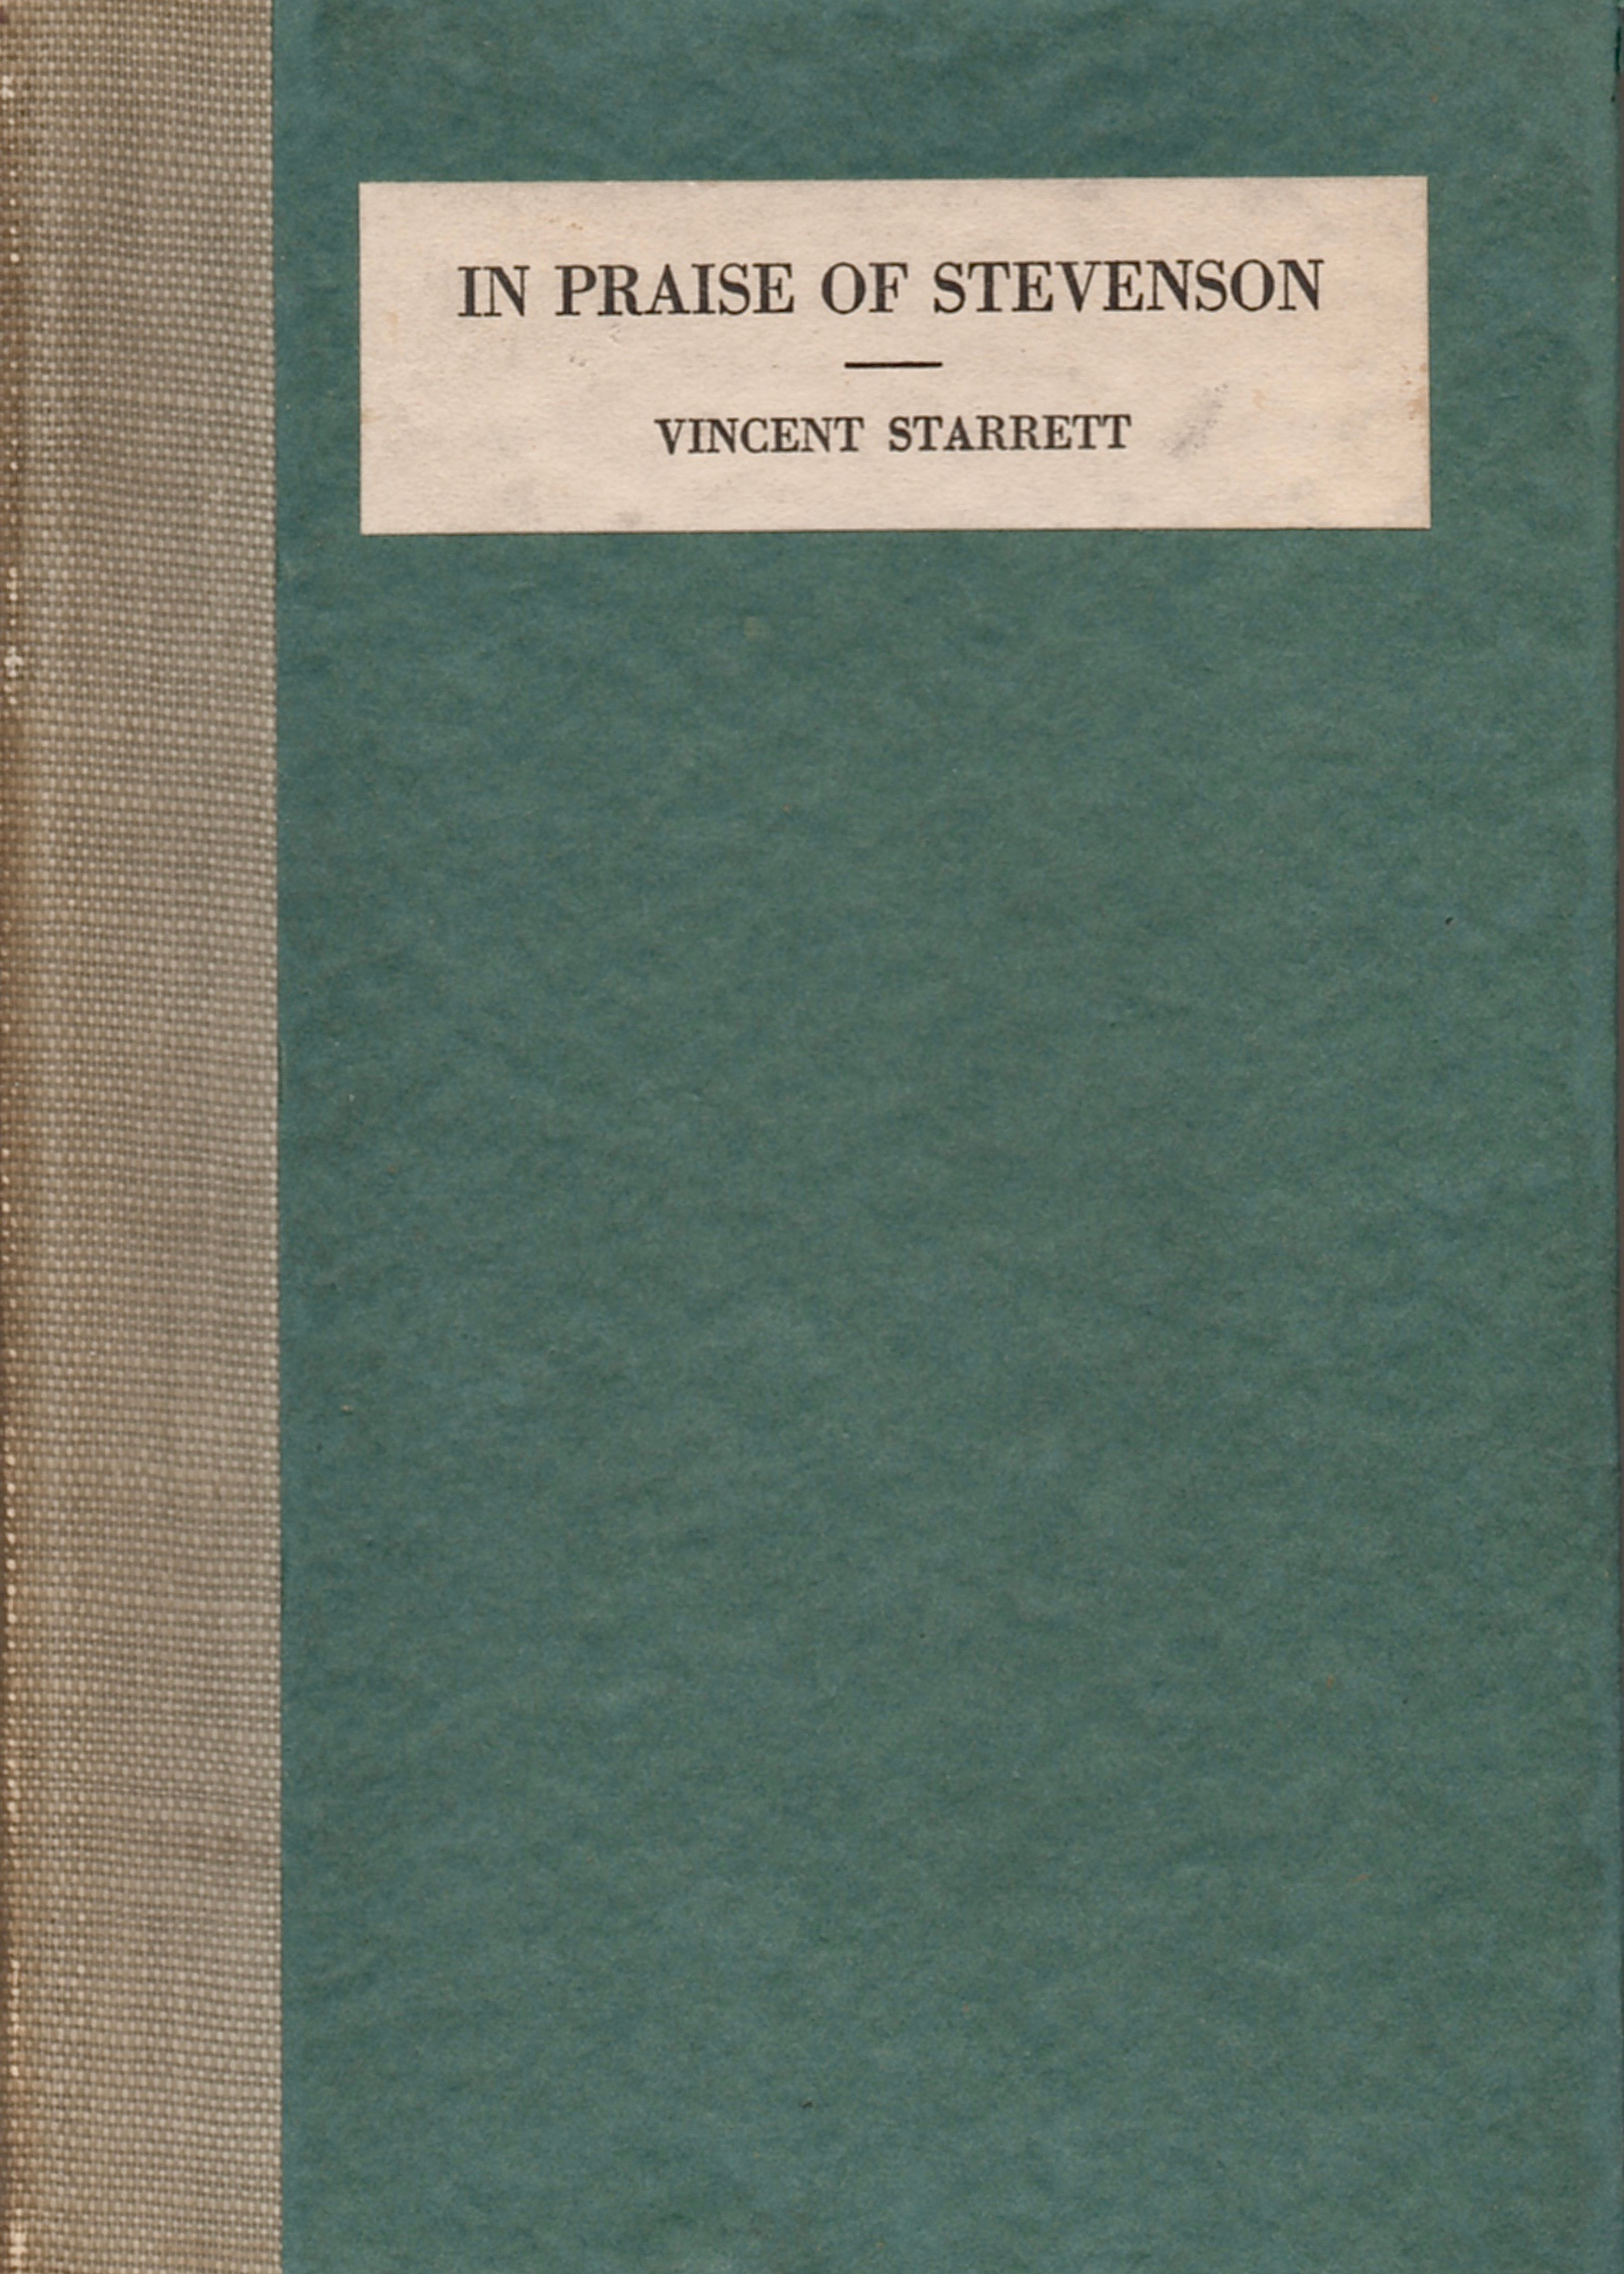 Starrett edited this anthology of verse dedicated to Robert Louis Stevenson, published in 1919.